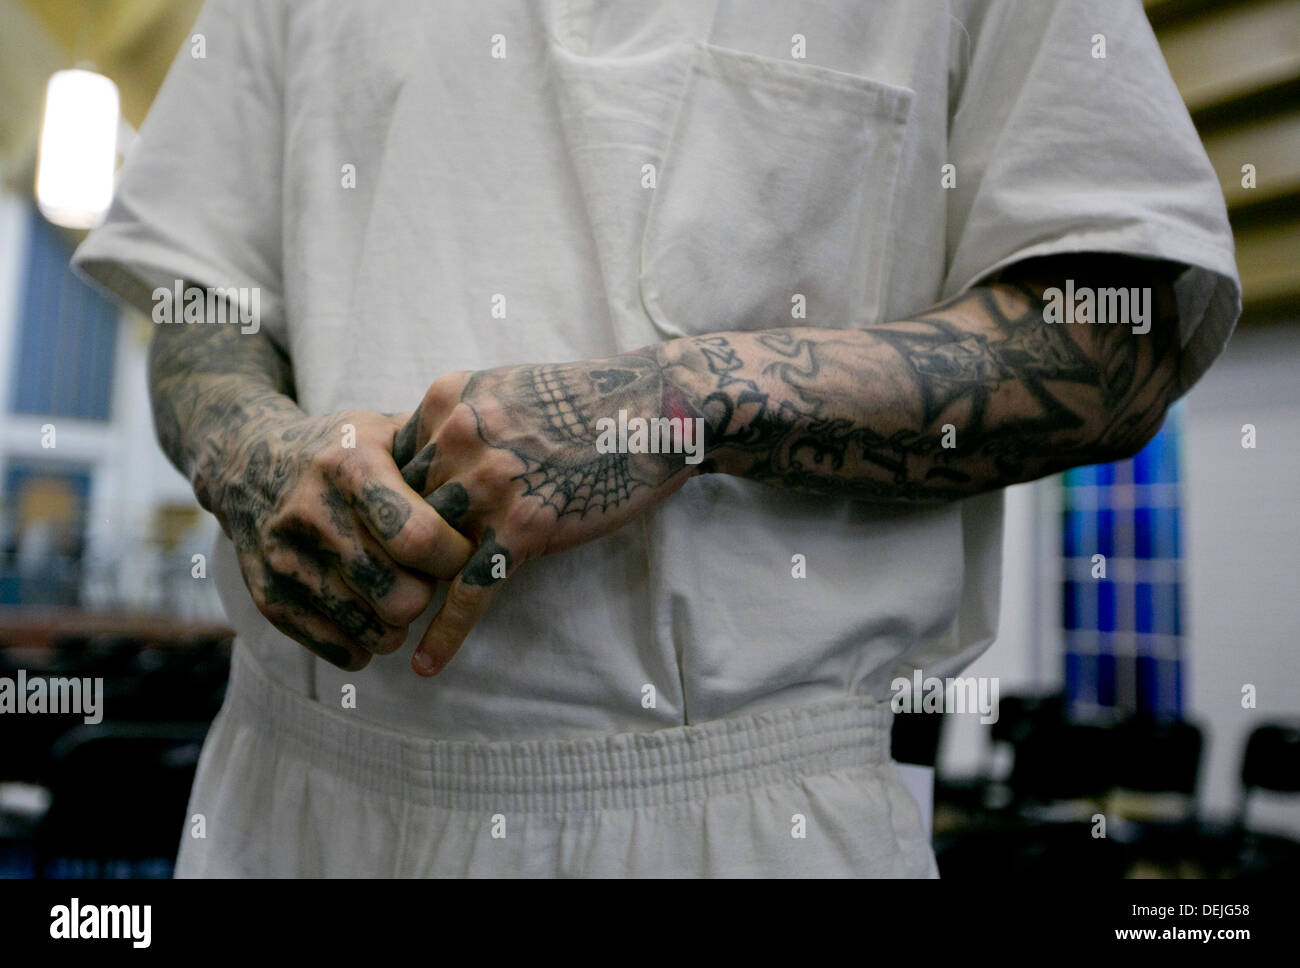 Male inmate with various tattoos on his arms inside maximum security ...